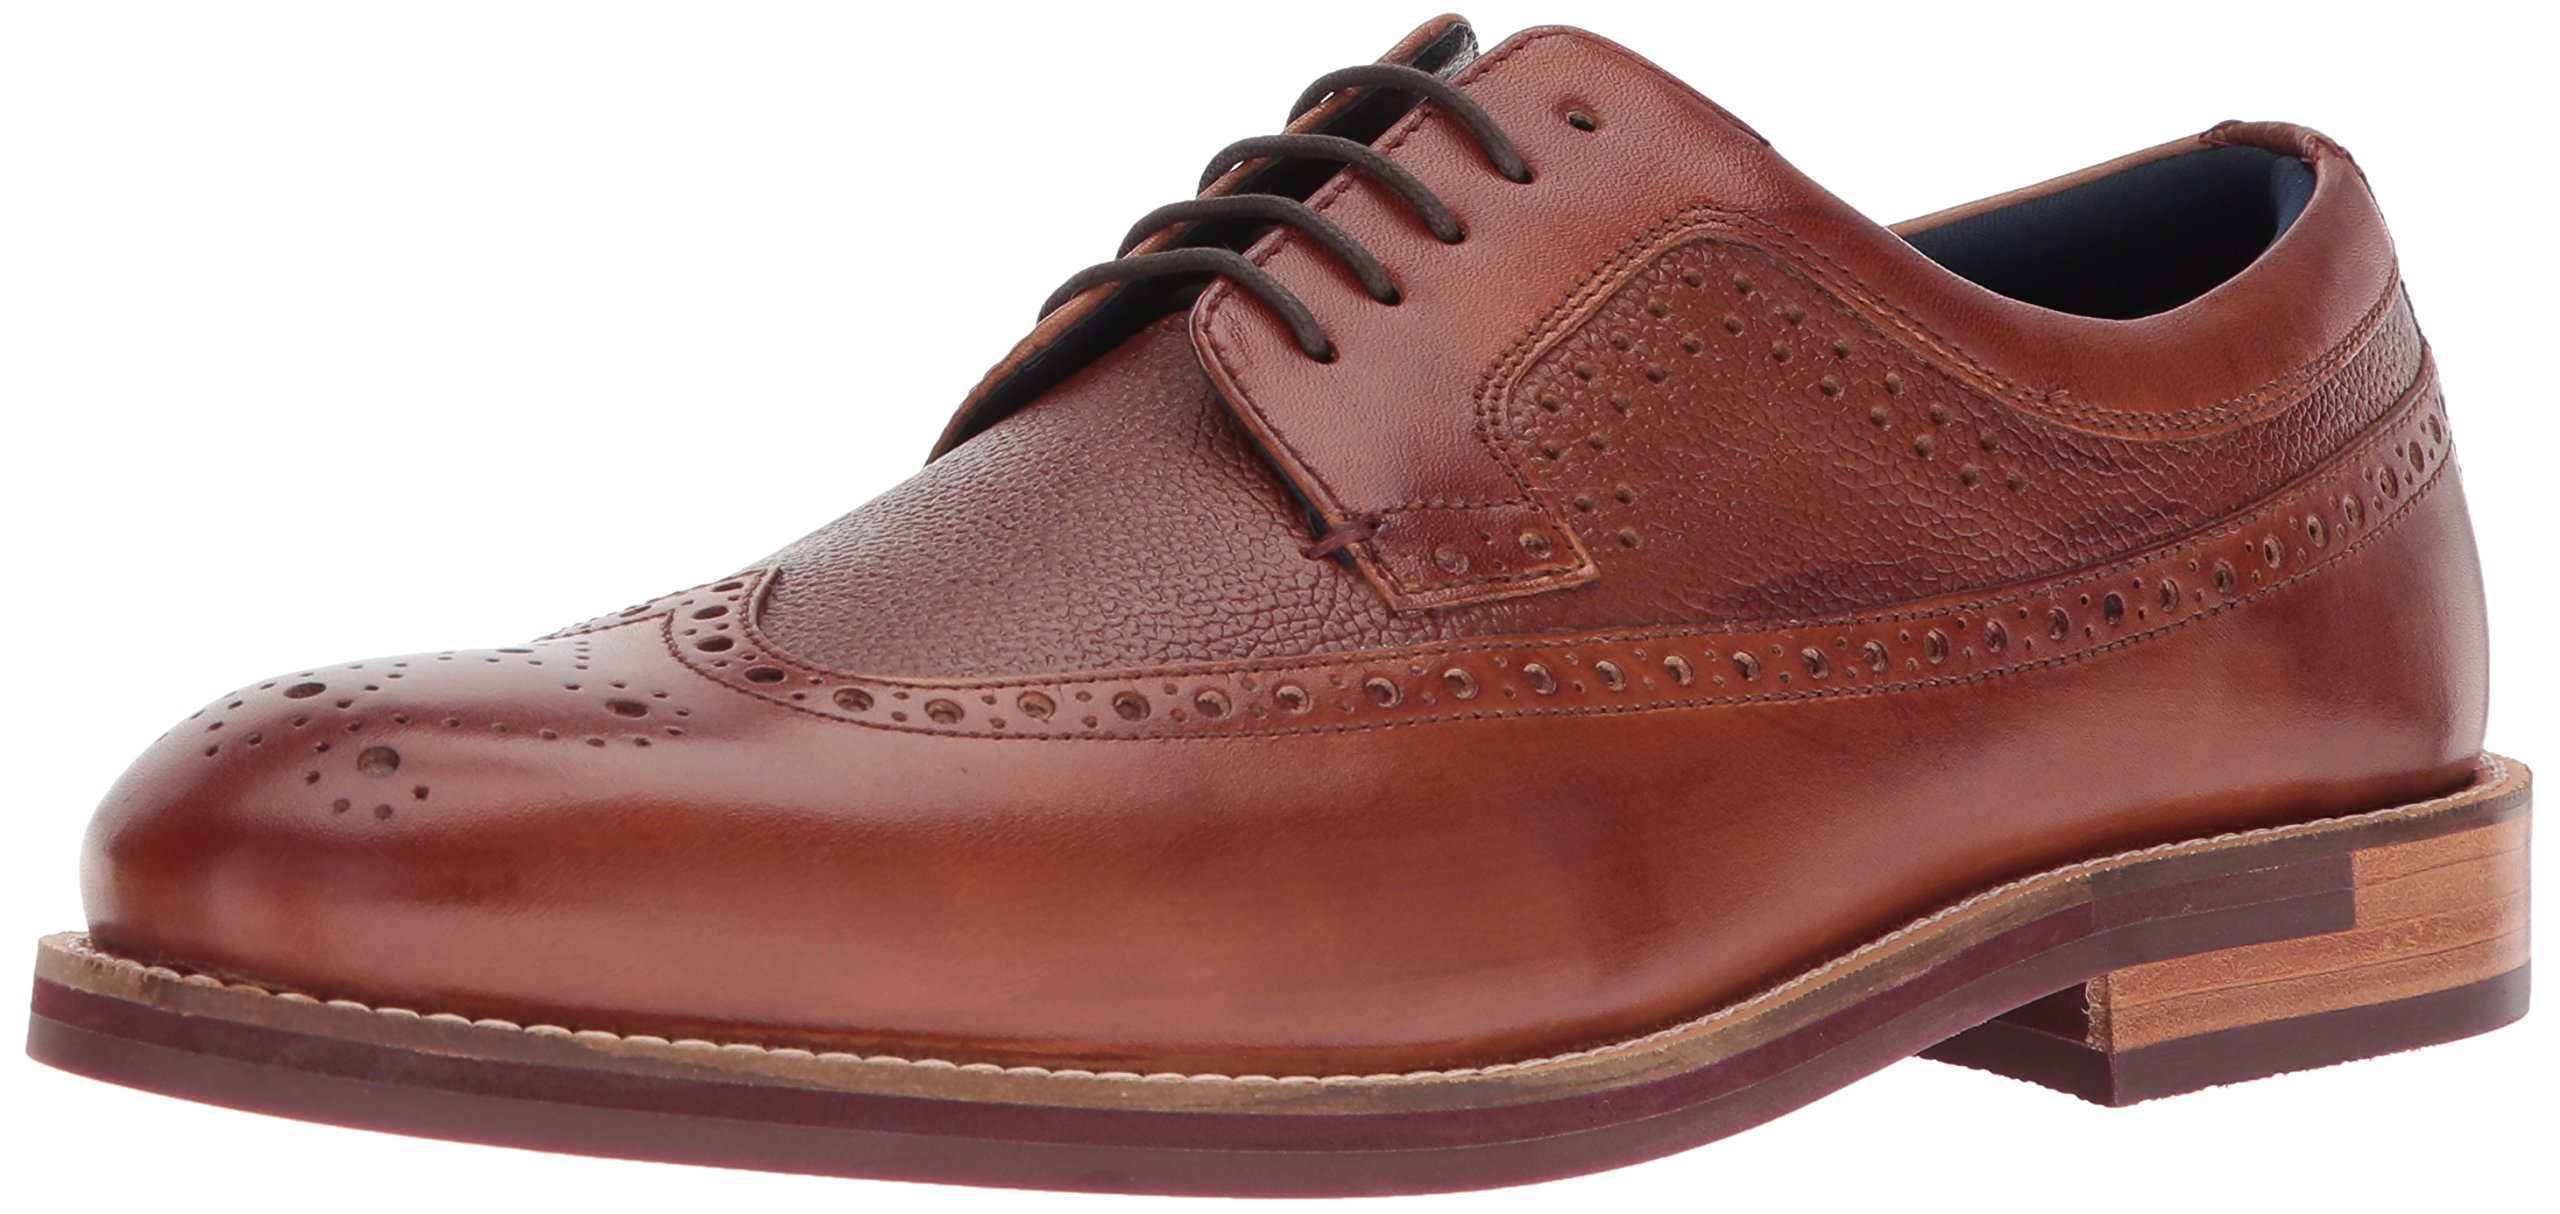 Ted Baker Men's Deelani Oxford, Tan Leather, 8 D(M) US